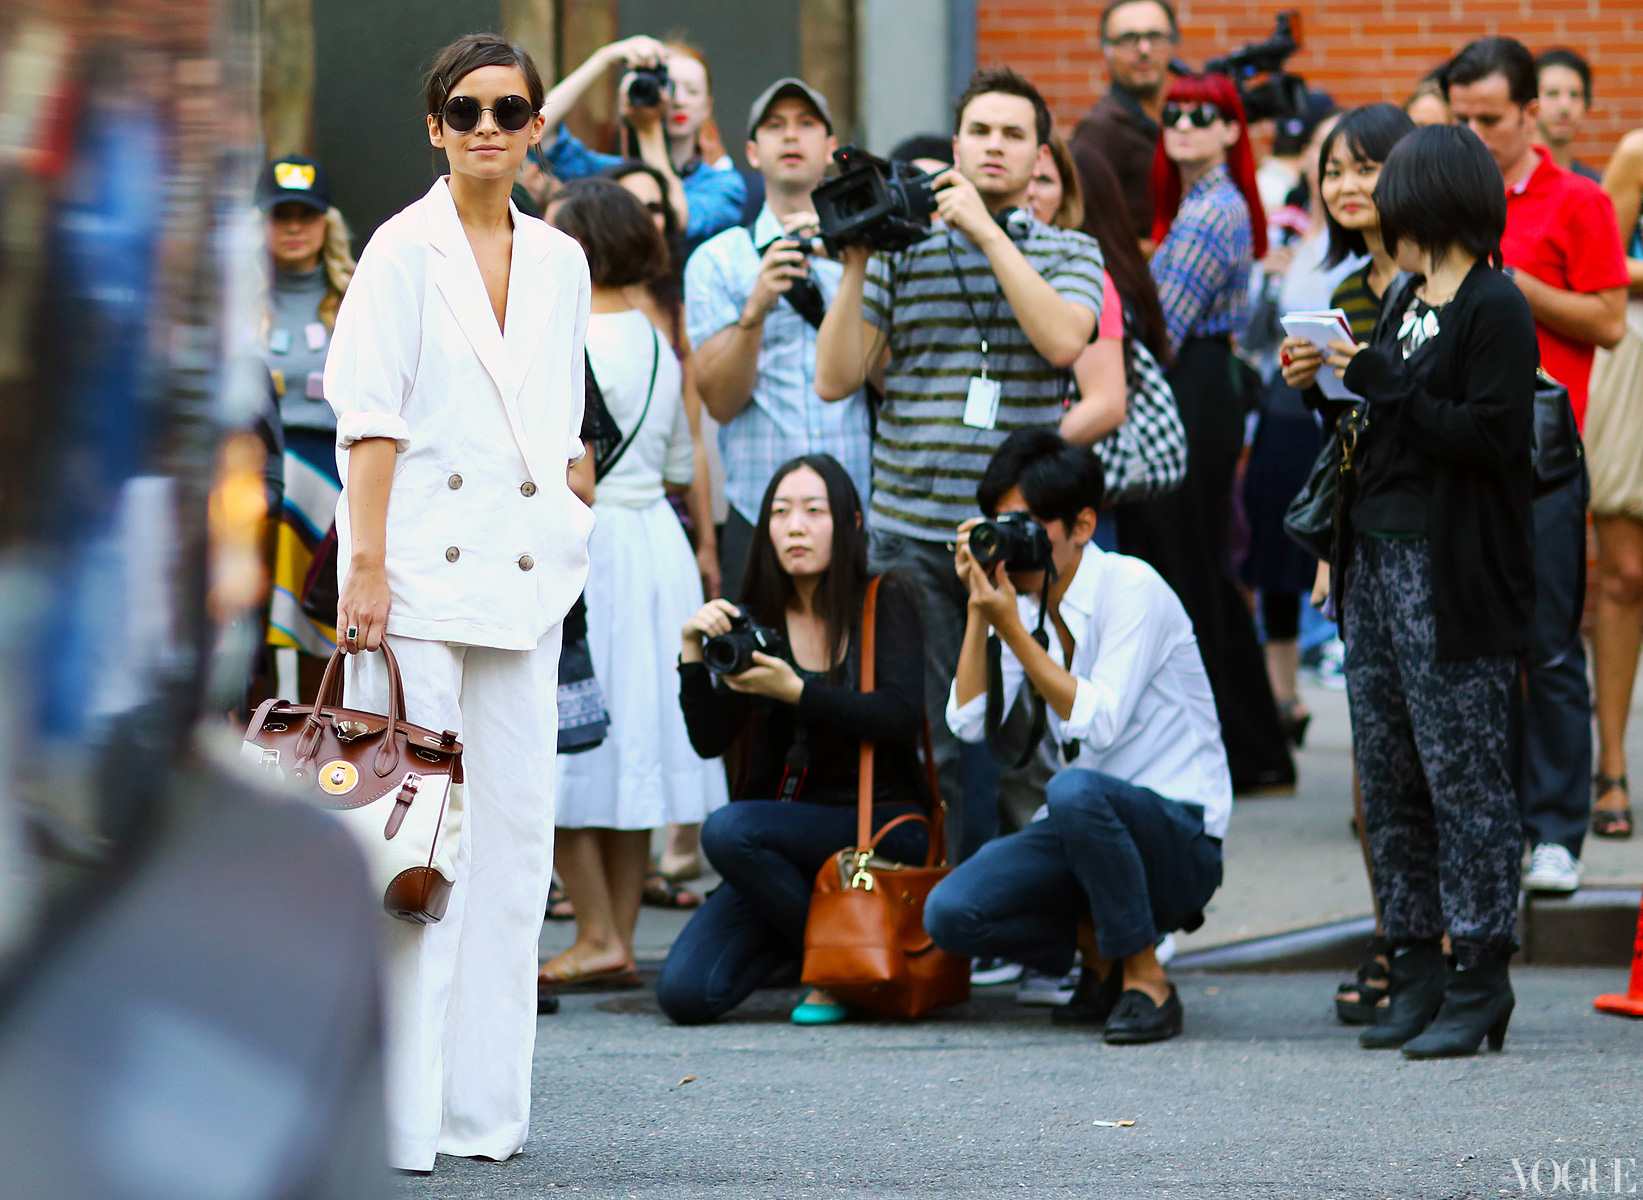 miroslava-duma-white-suit-ralph-lauren-bag-new-york-fashion-week-spring-2013-street-style